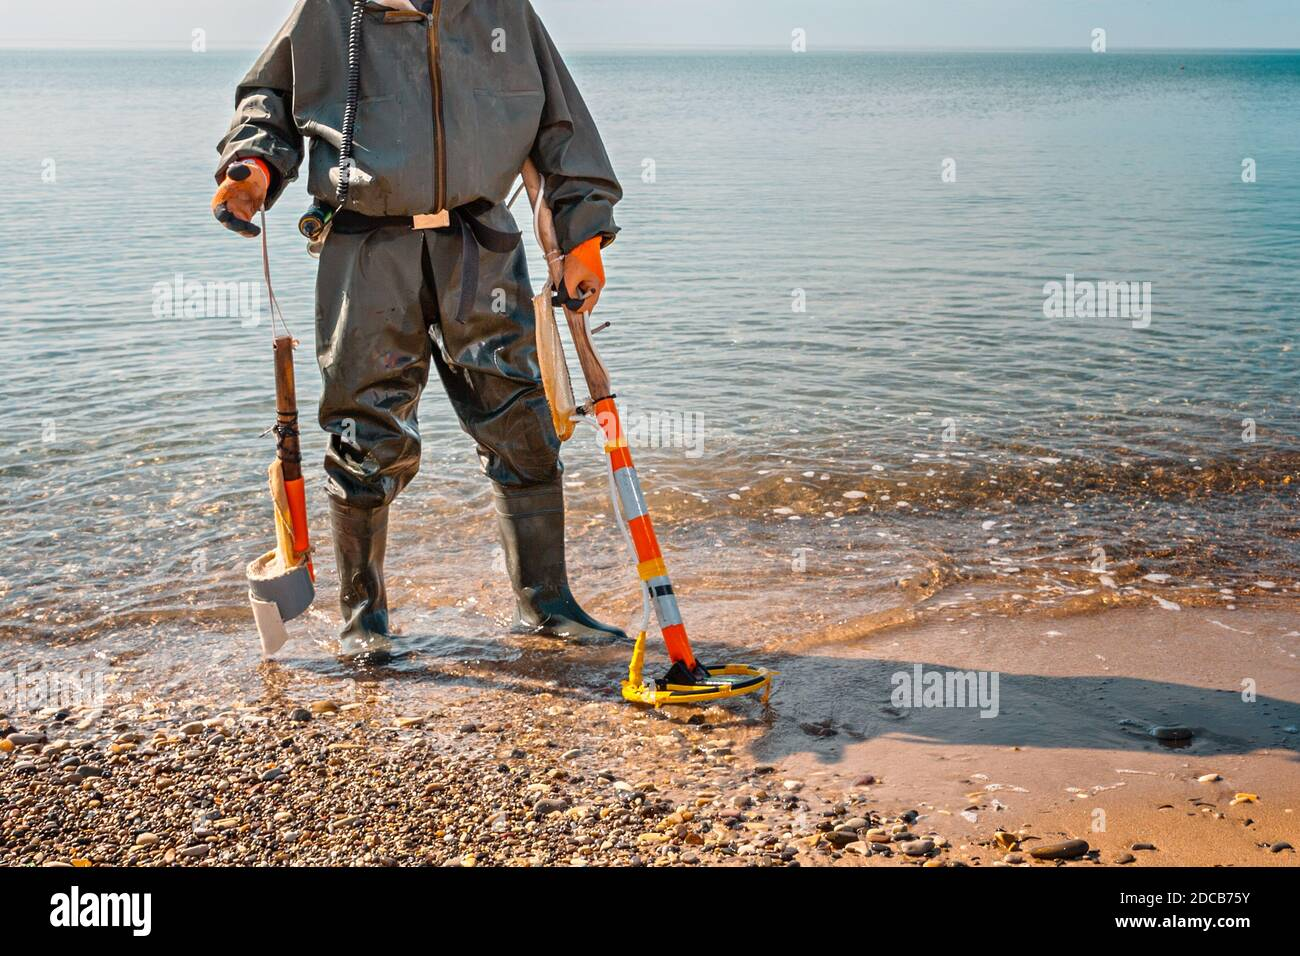 A man with a metal detector stands on the beach, ready for new archaeological finds. Sea on the background. Stock Photo